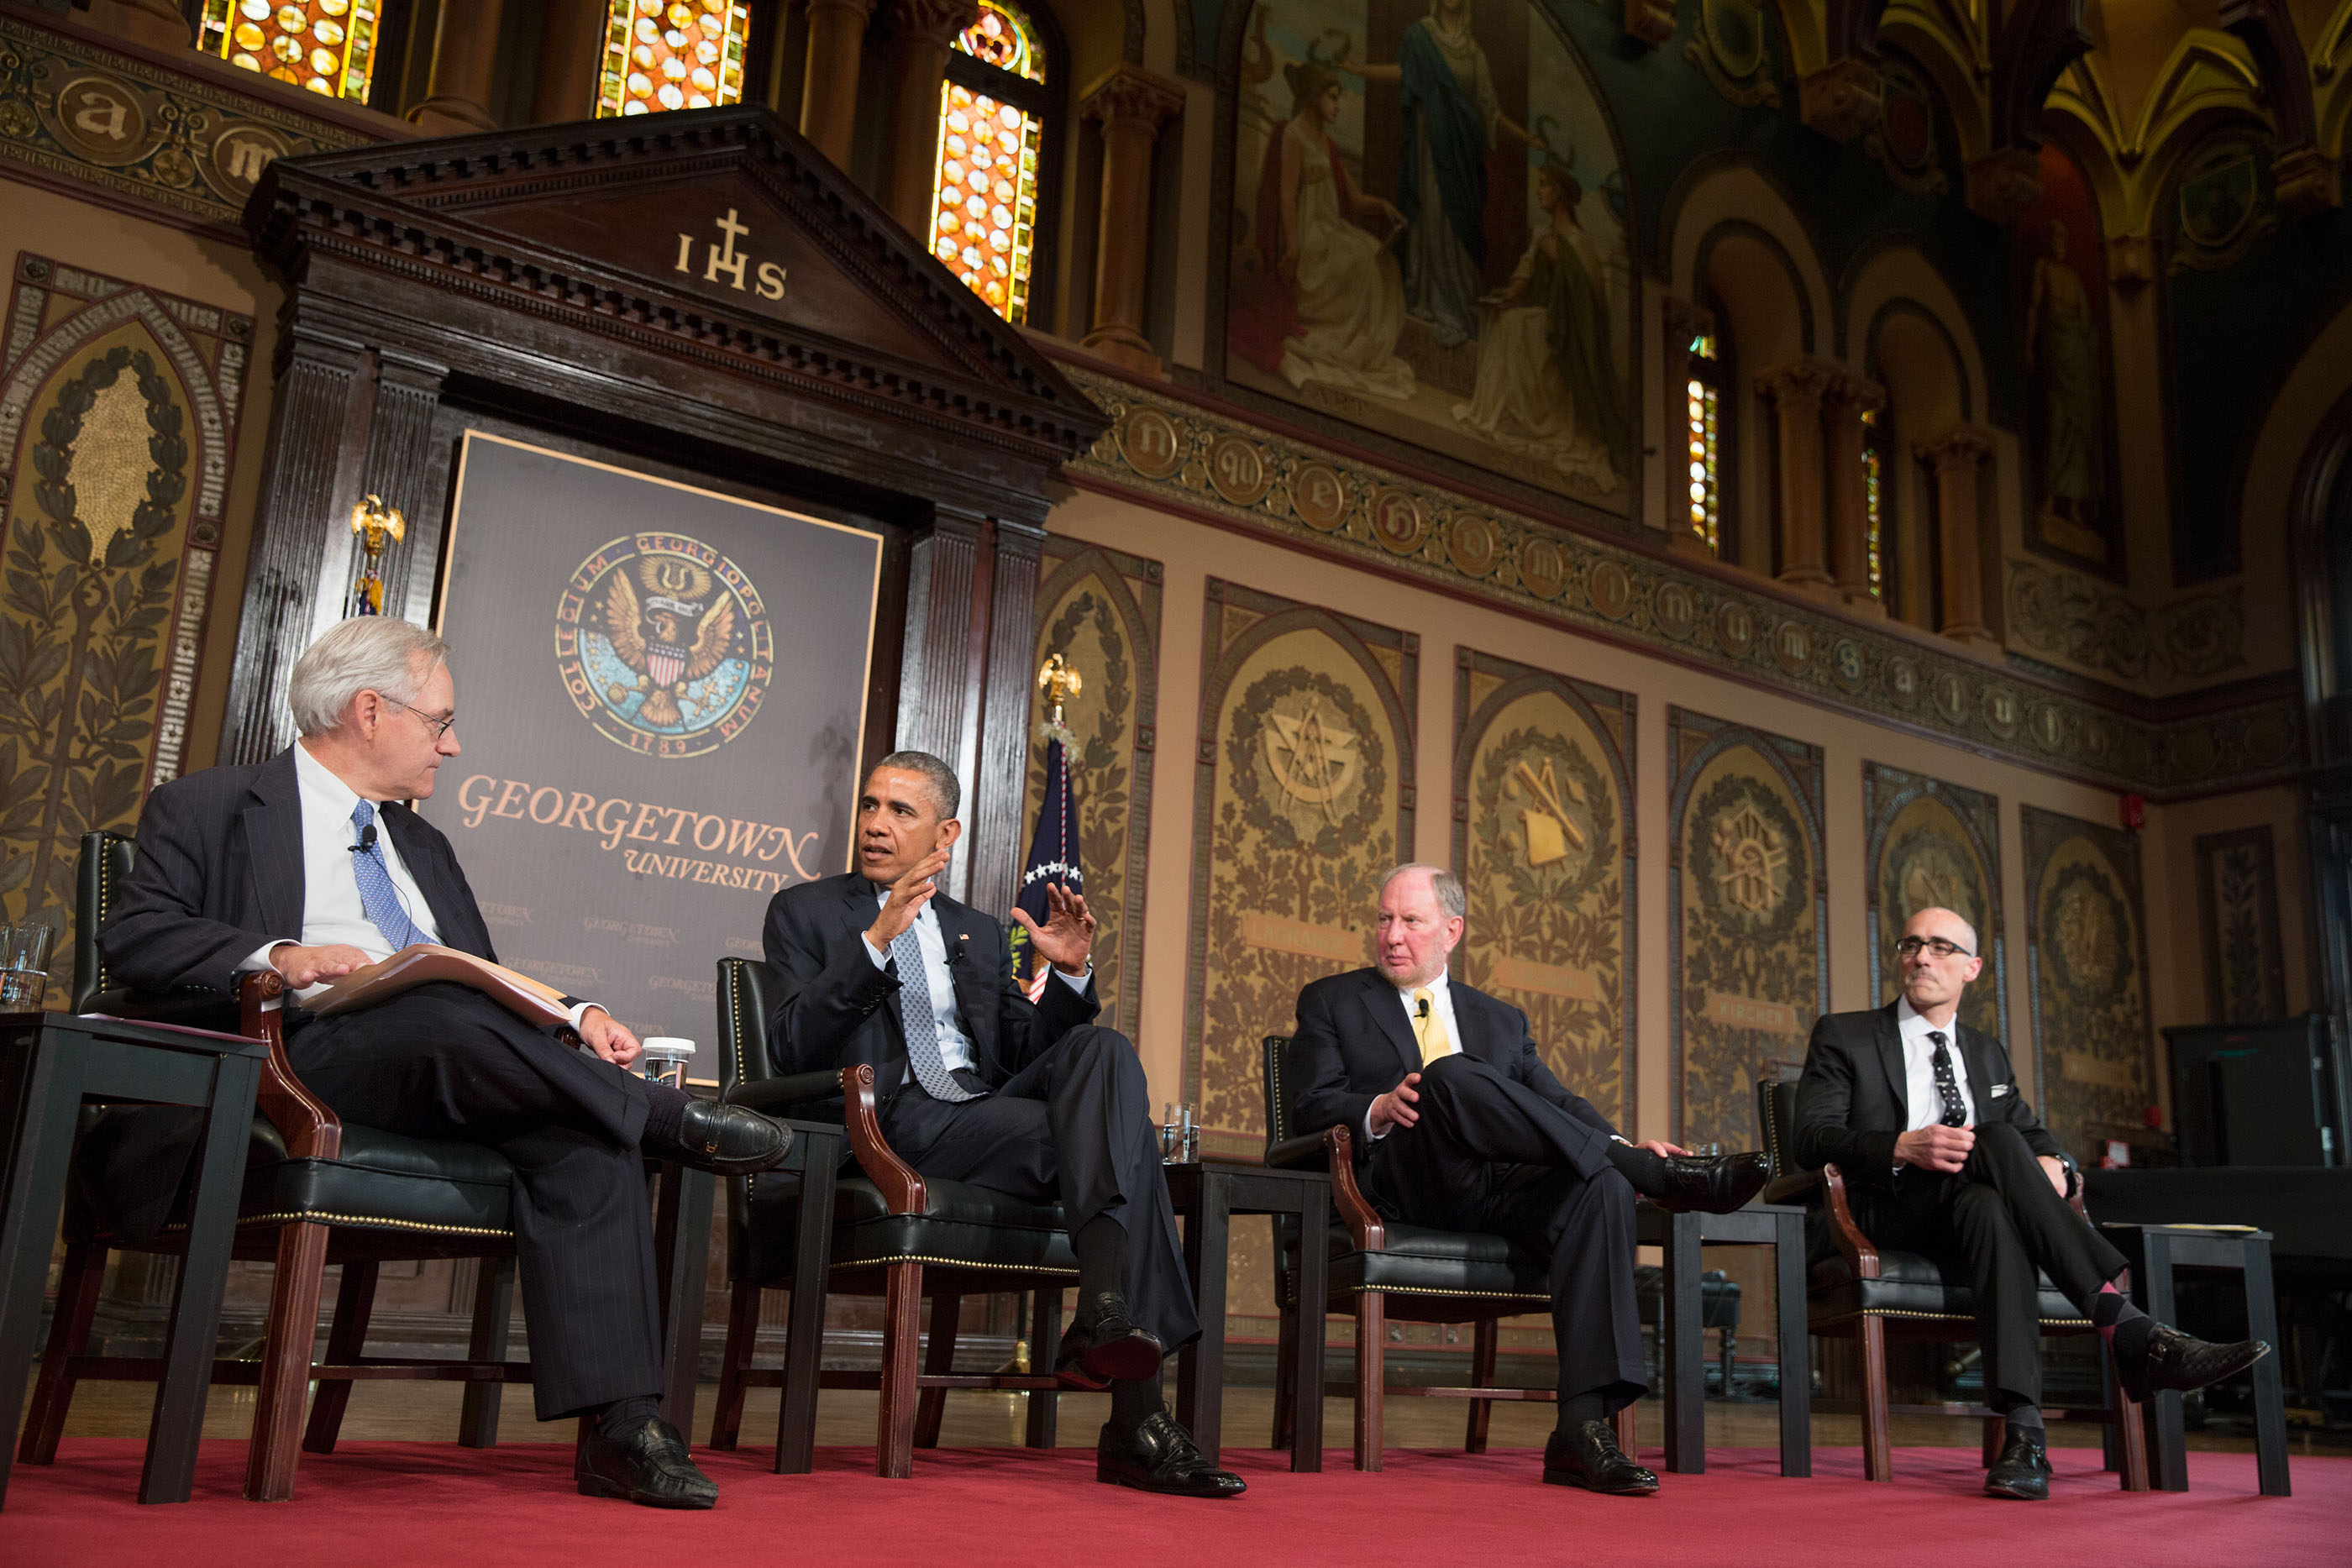 President Barack Obama participates in a discussion about poverty during the Catholic-Evangelical Leadership Summit on Overcoming Poverty